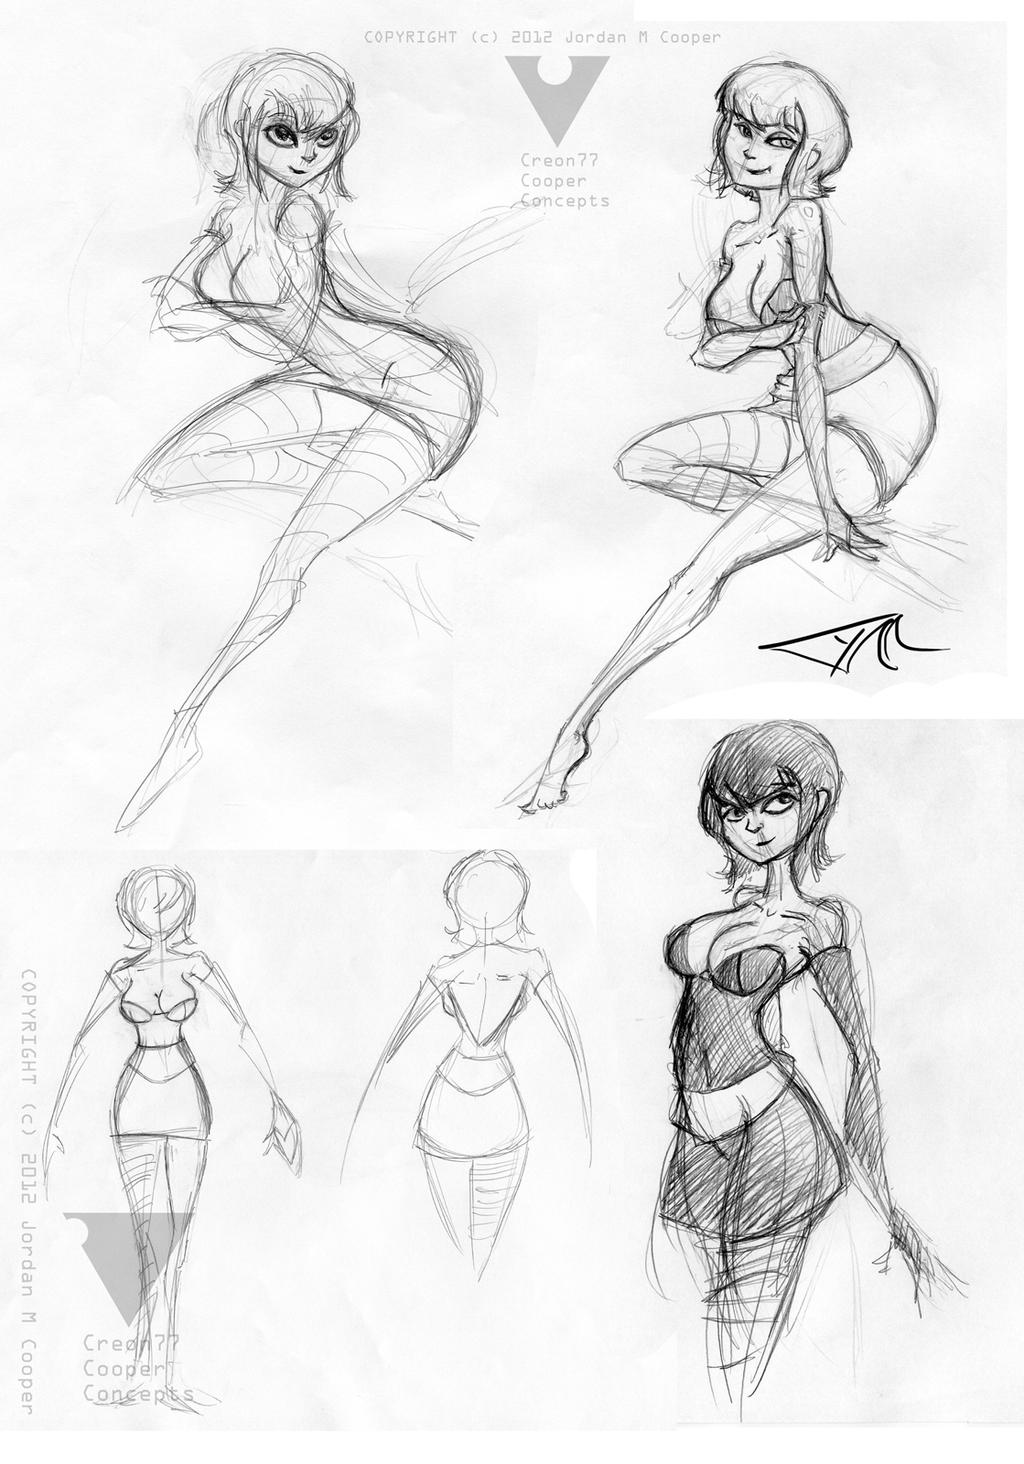 mavis concepts by creon77 on deviantart